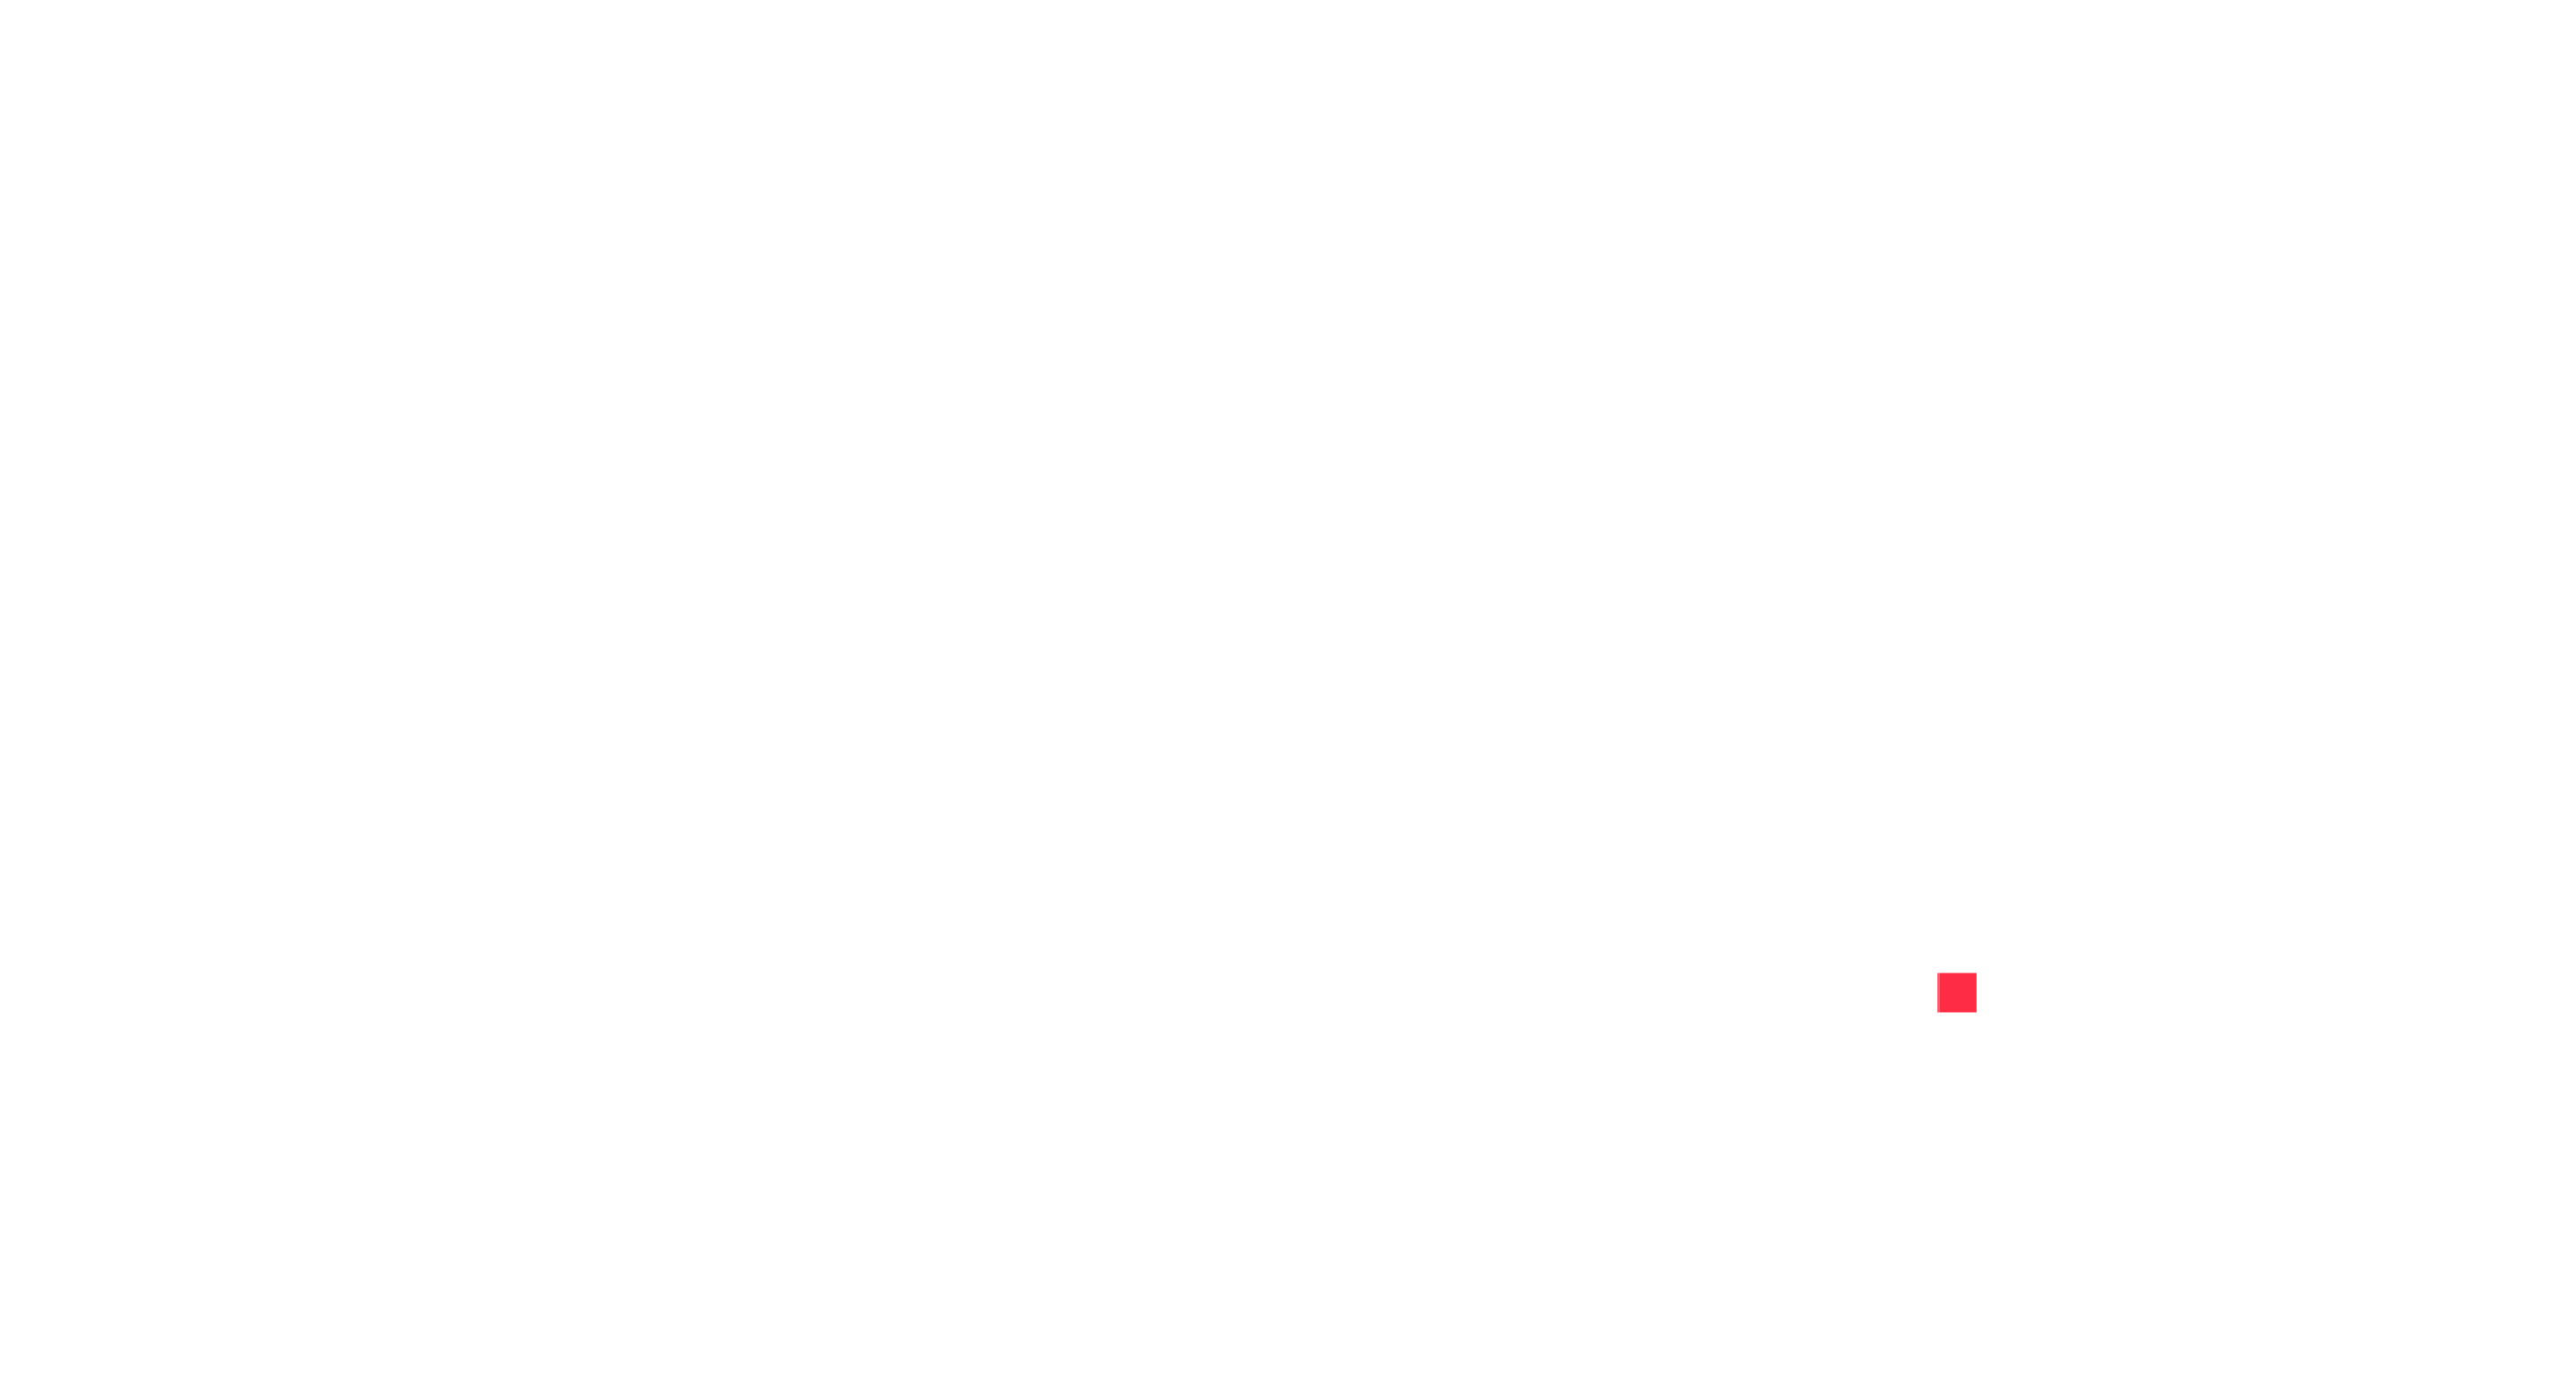 Digital Factory logo composition